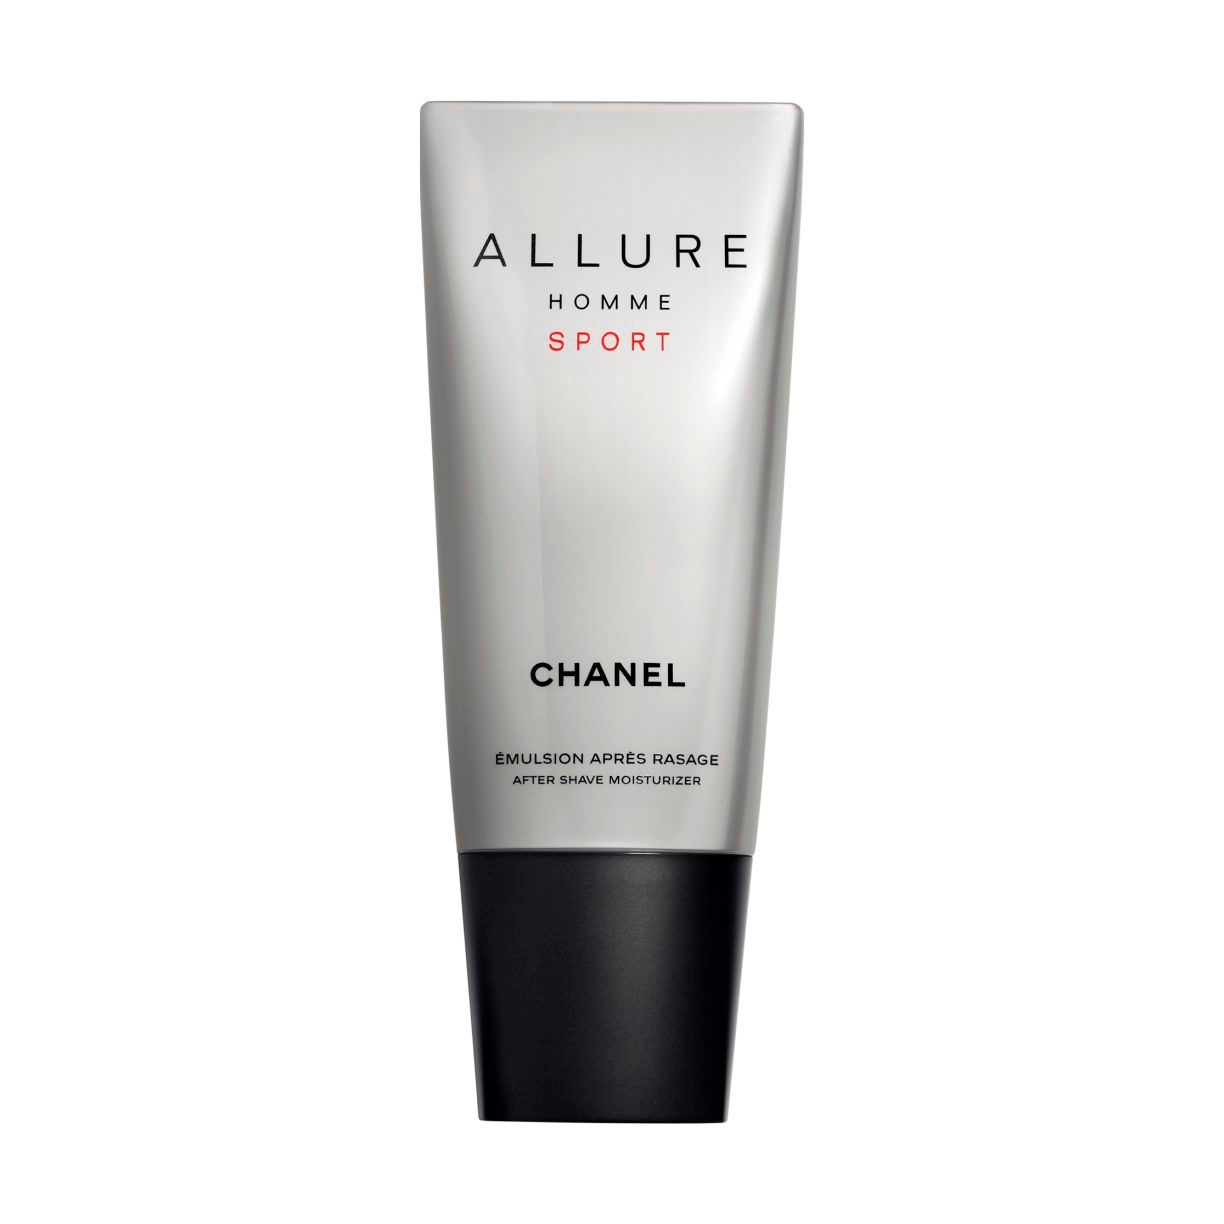 ALLURE HOMME SPORT AFTER SHAVE MOISTURISER